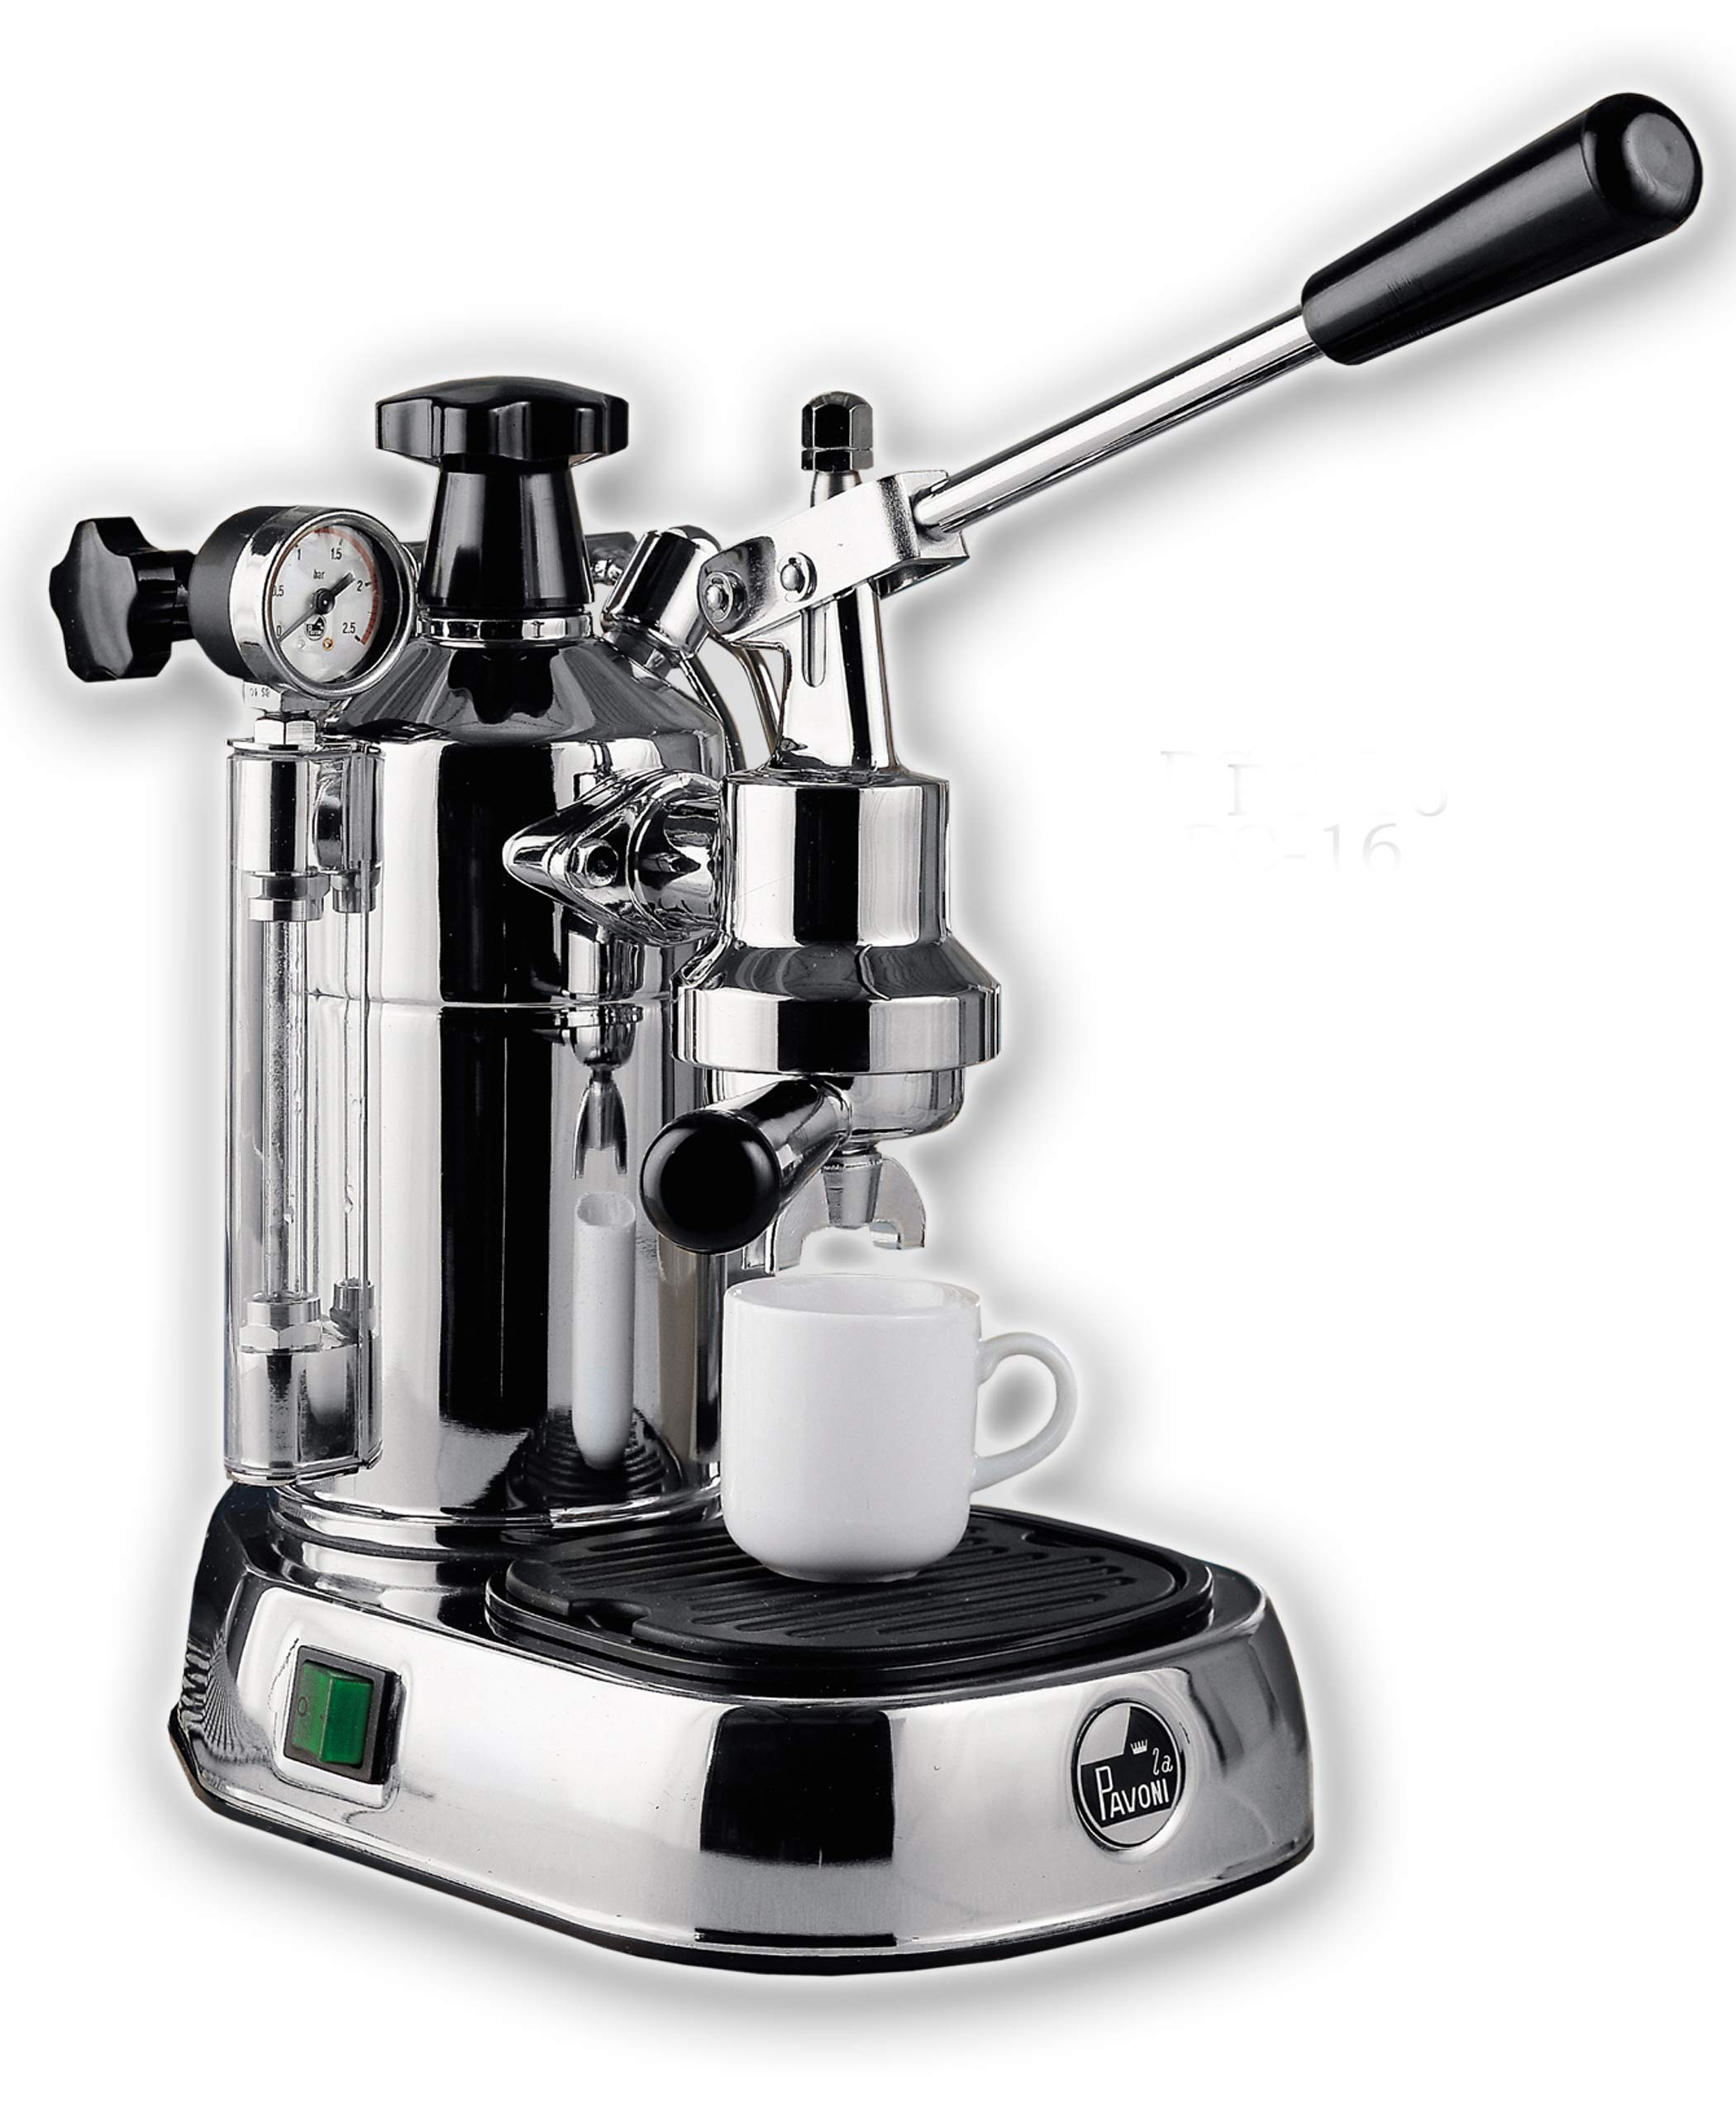 La Pavoni PC-16 Professional Espresso Machine